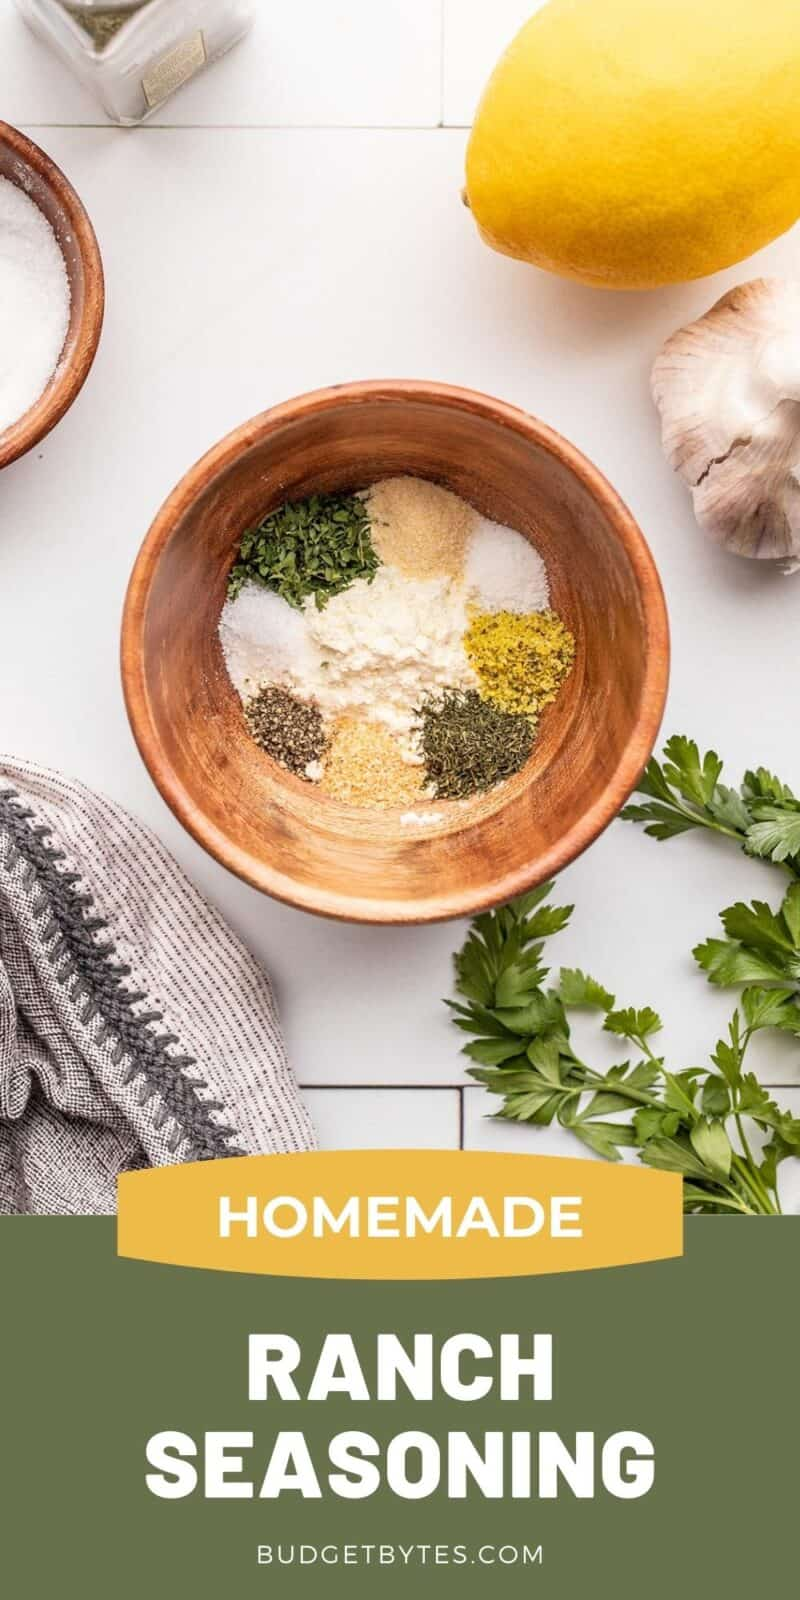 homemade ranch seasoning mix in a bowl, title text at the bottom